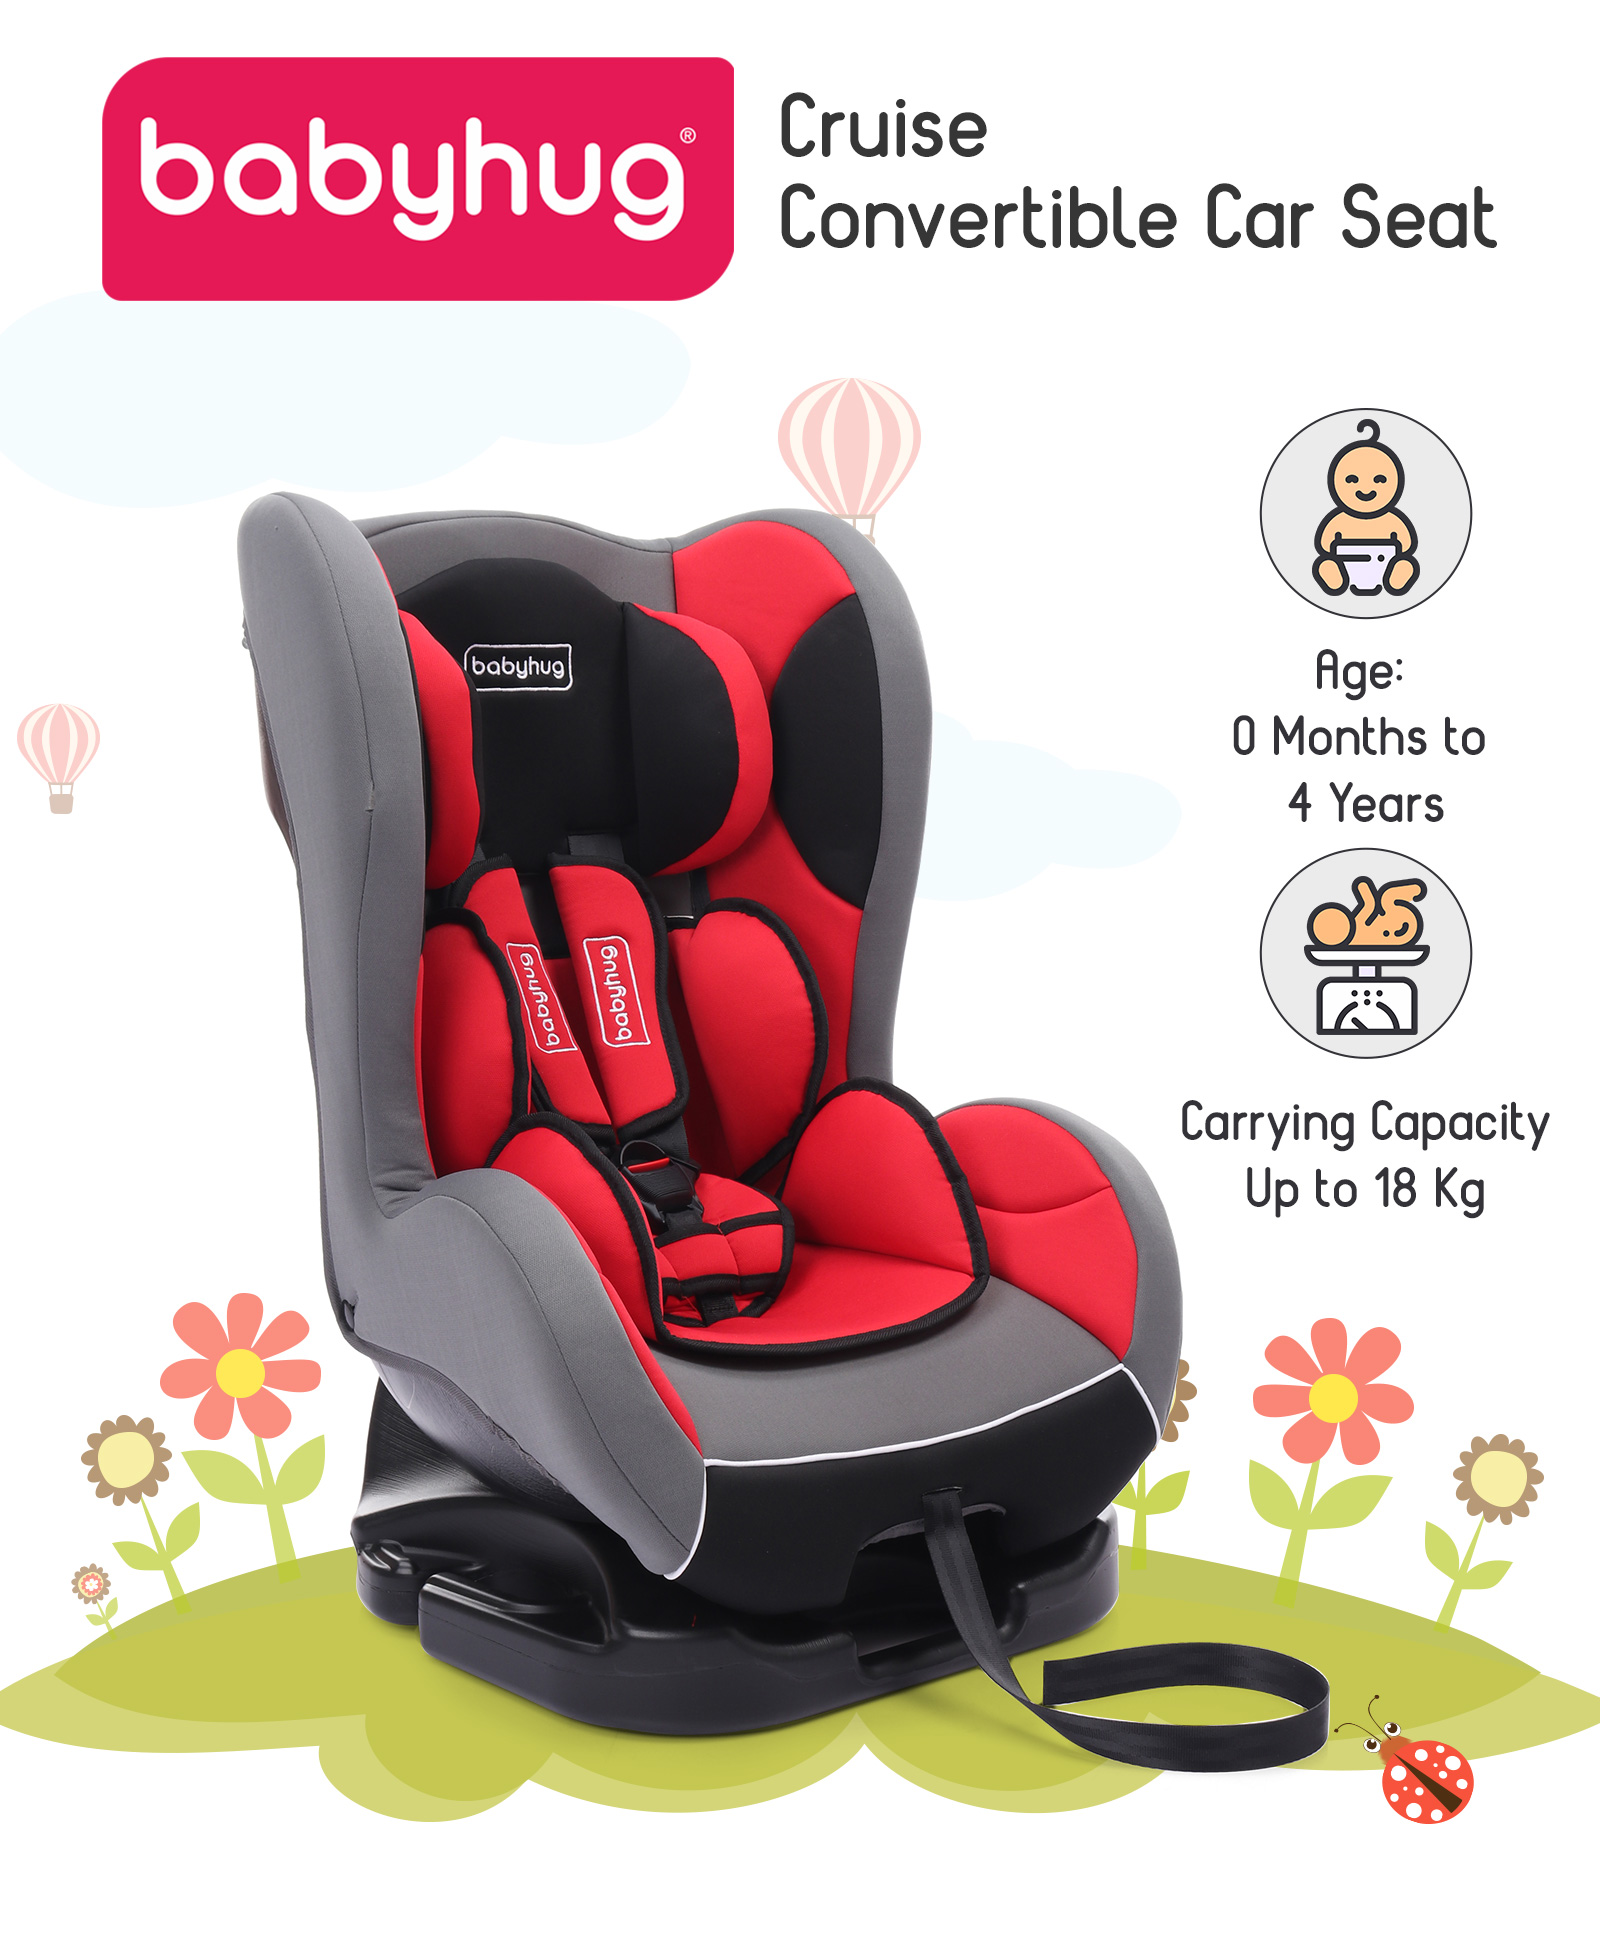 Babyhug Cruise Convertible Reclining Car Seat With Side Impact Protection Red Black Online In India Buy At Best Price From Firstcry Com 1773885